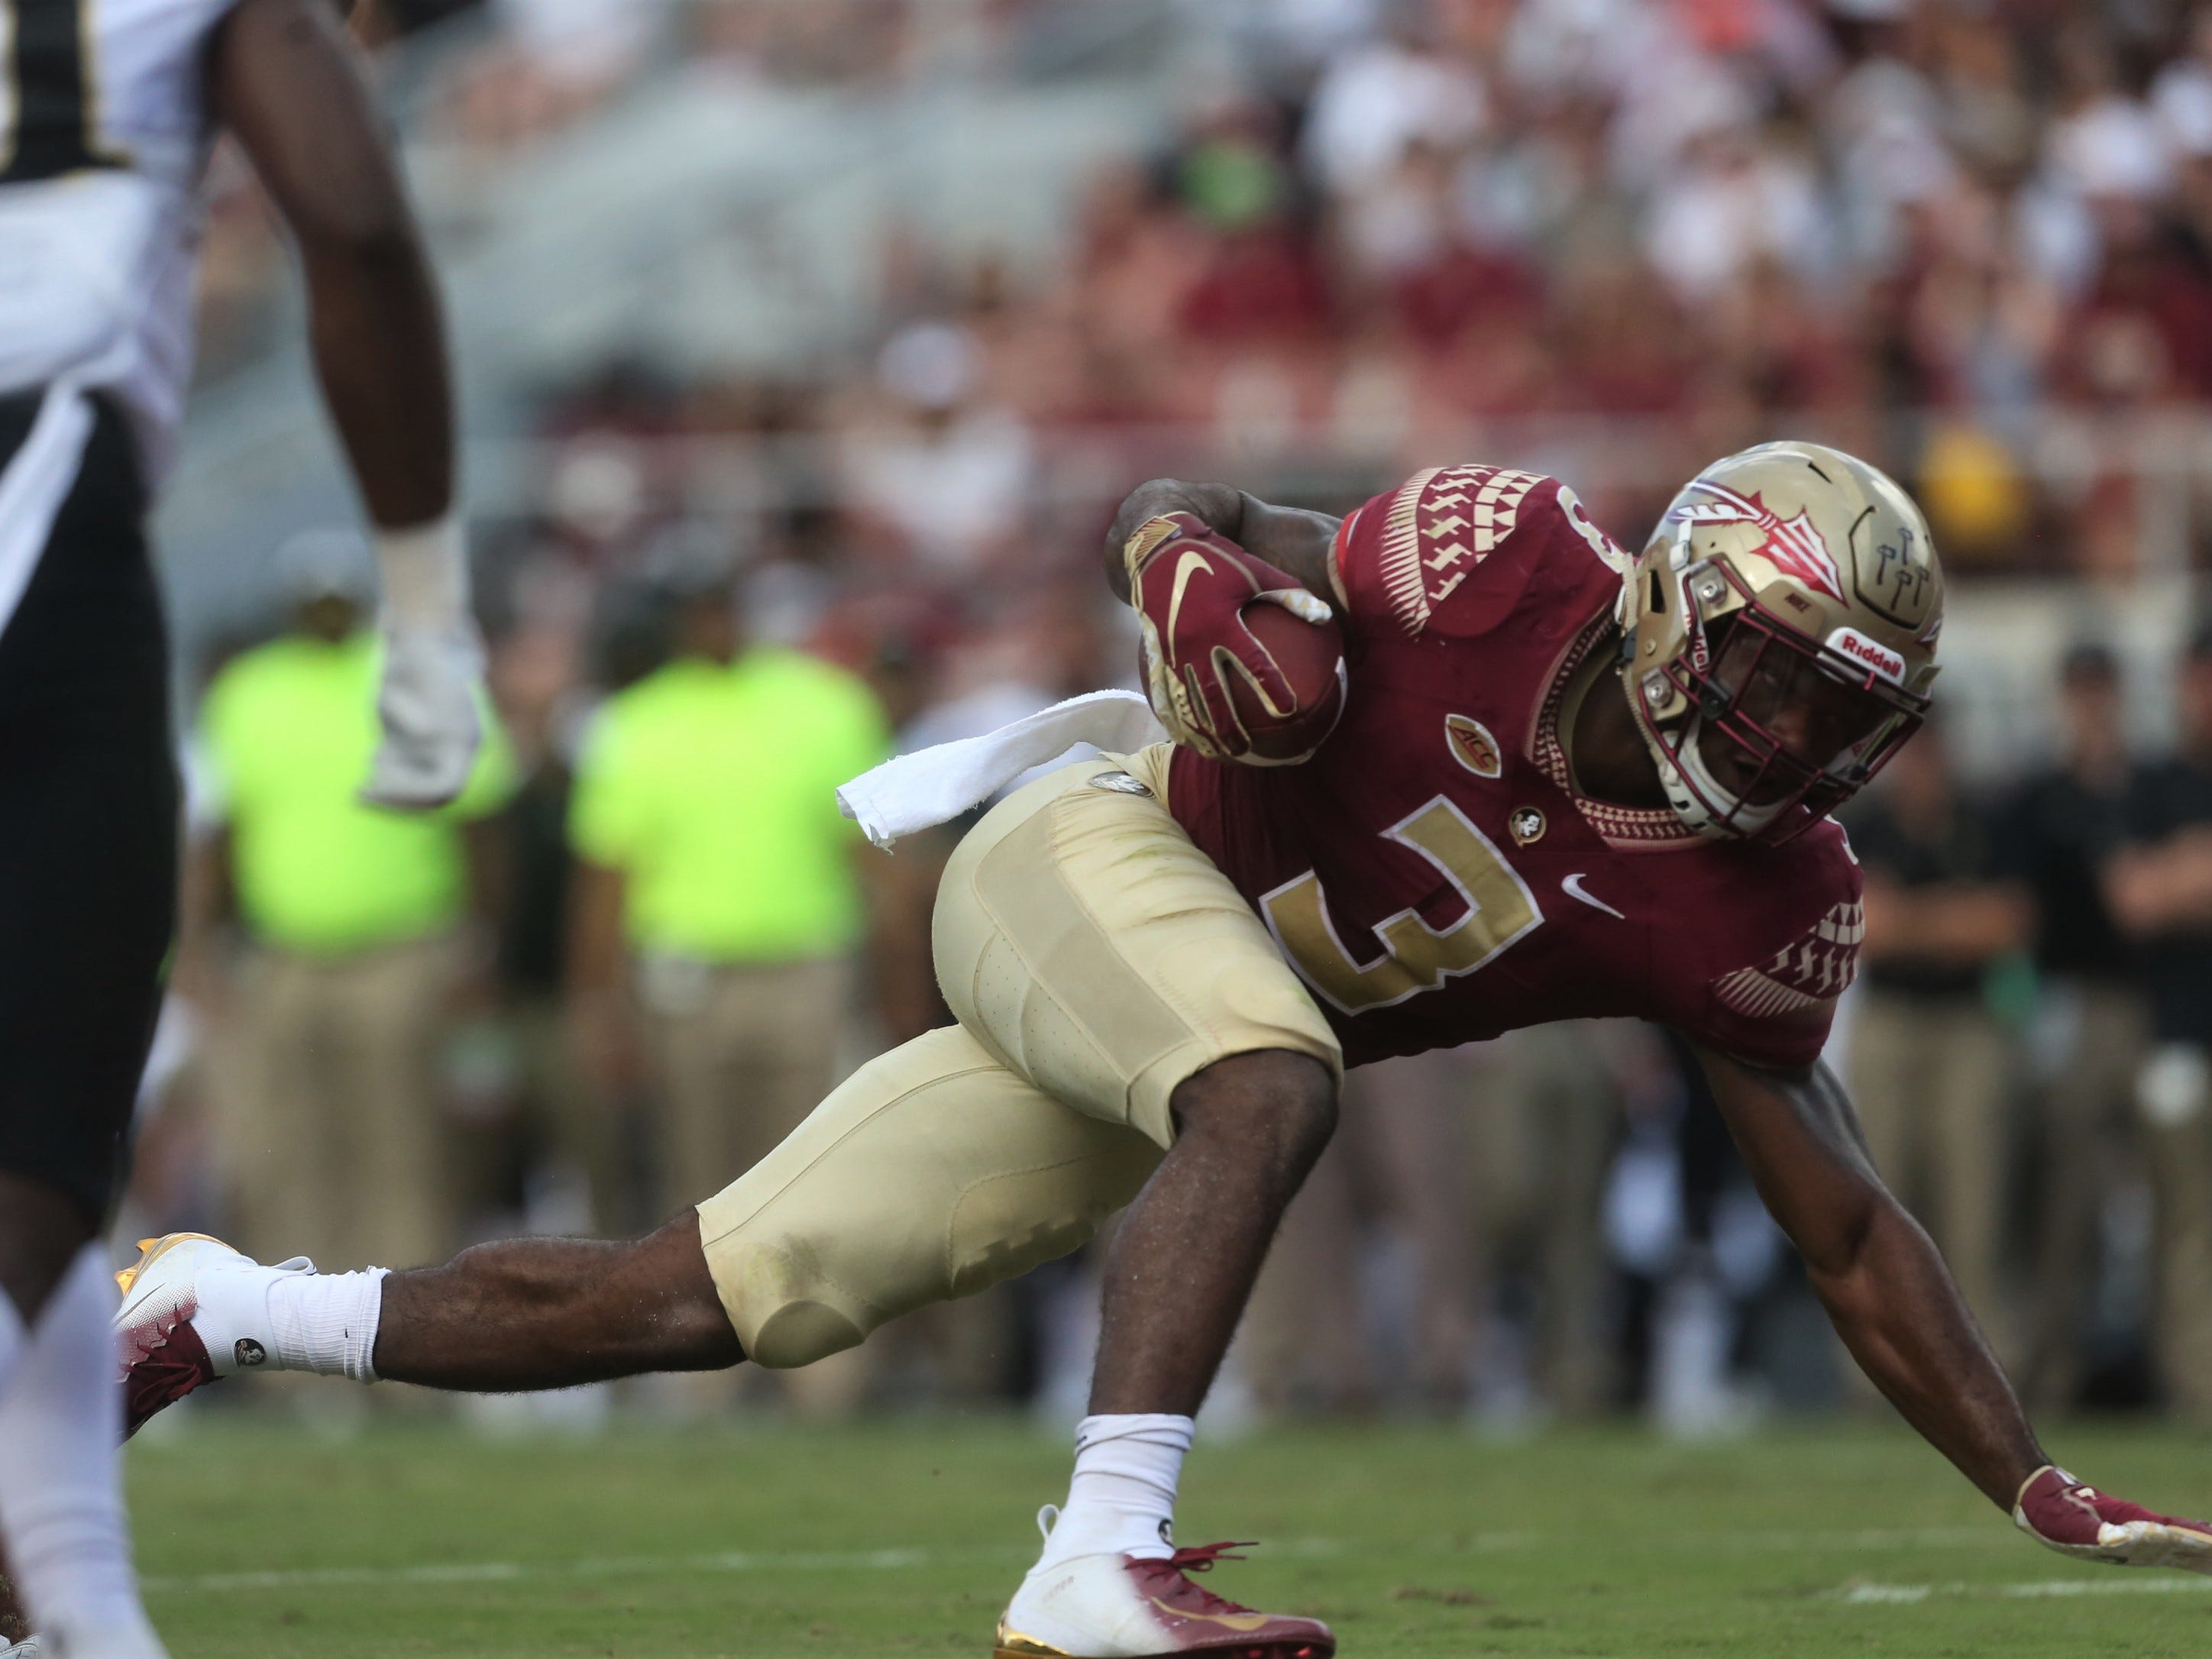 Florida State running back Cam Akers escapes Wake Forest tacklers to score a three-yard rushing touchdown in the first quarter of a game at Doak Campbell Stadium on Saturday, Oct. 20, 2018.